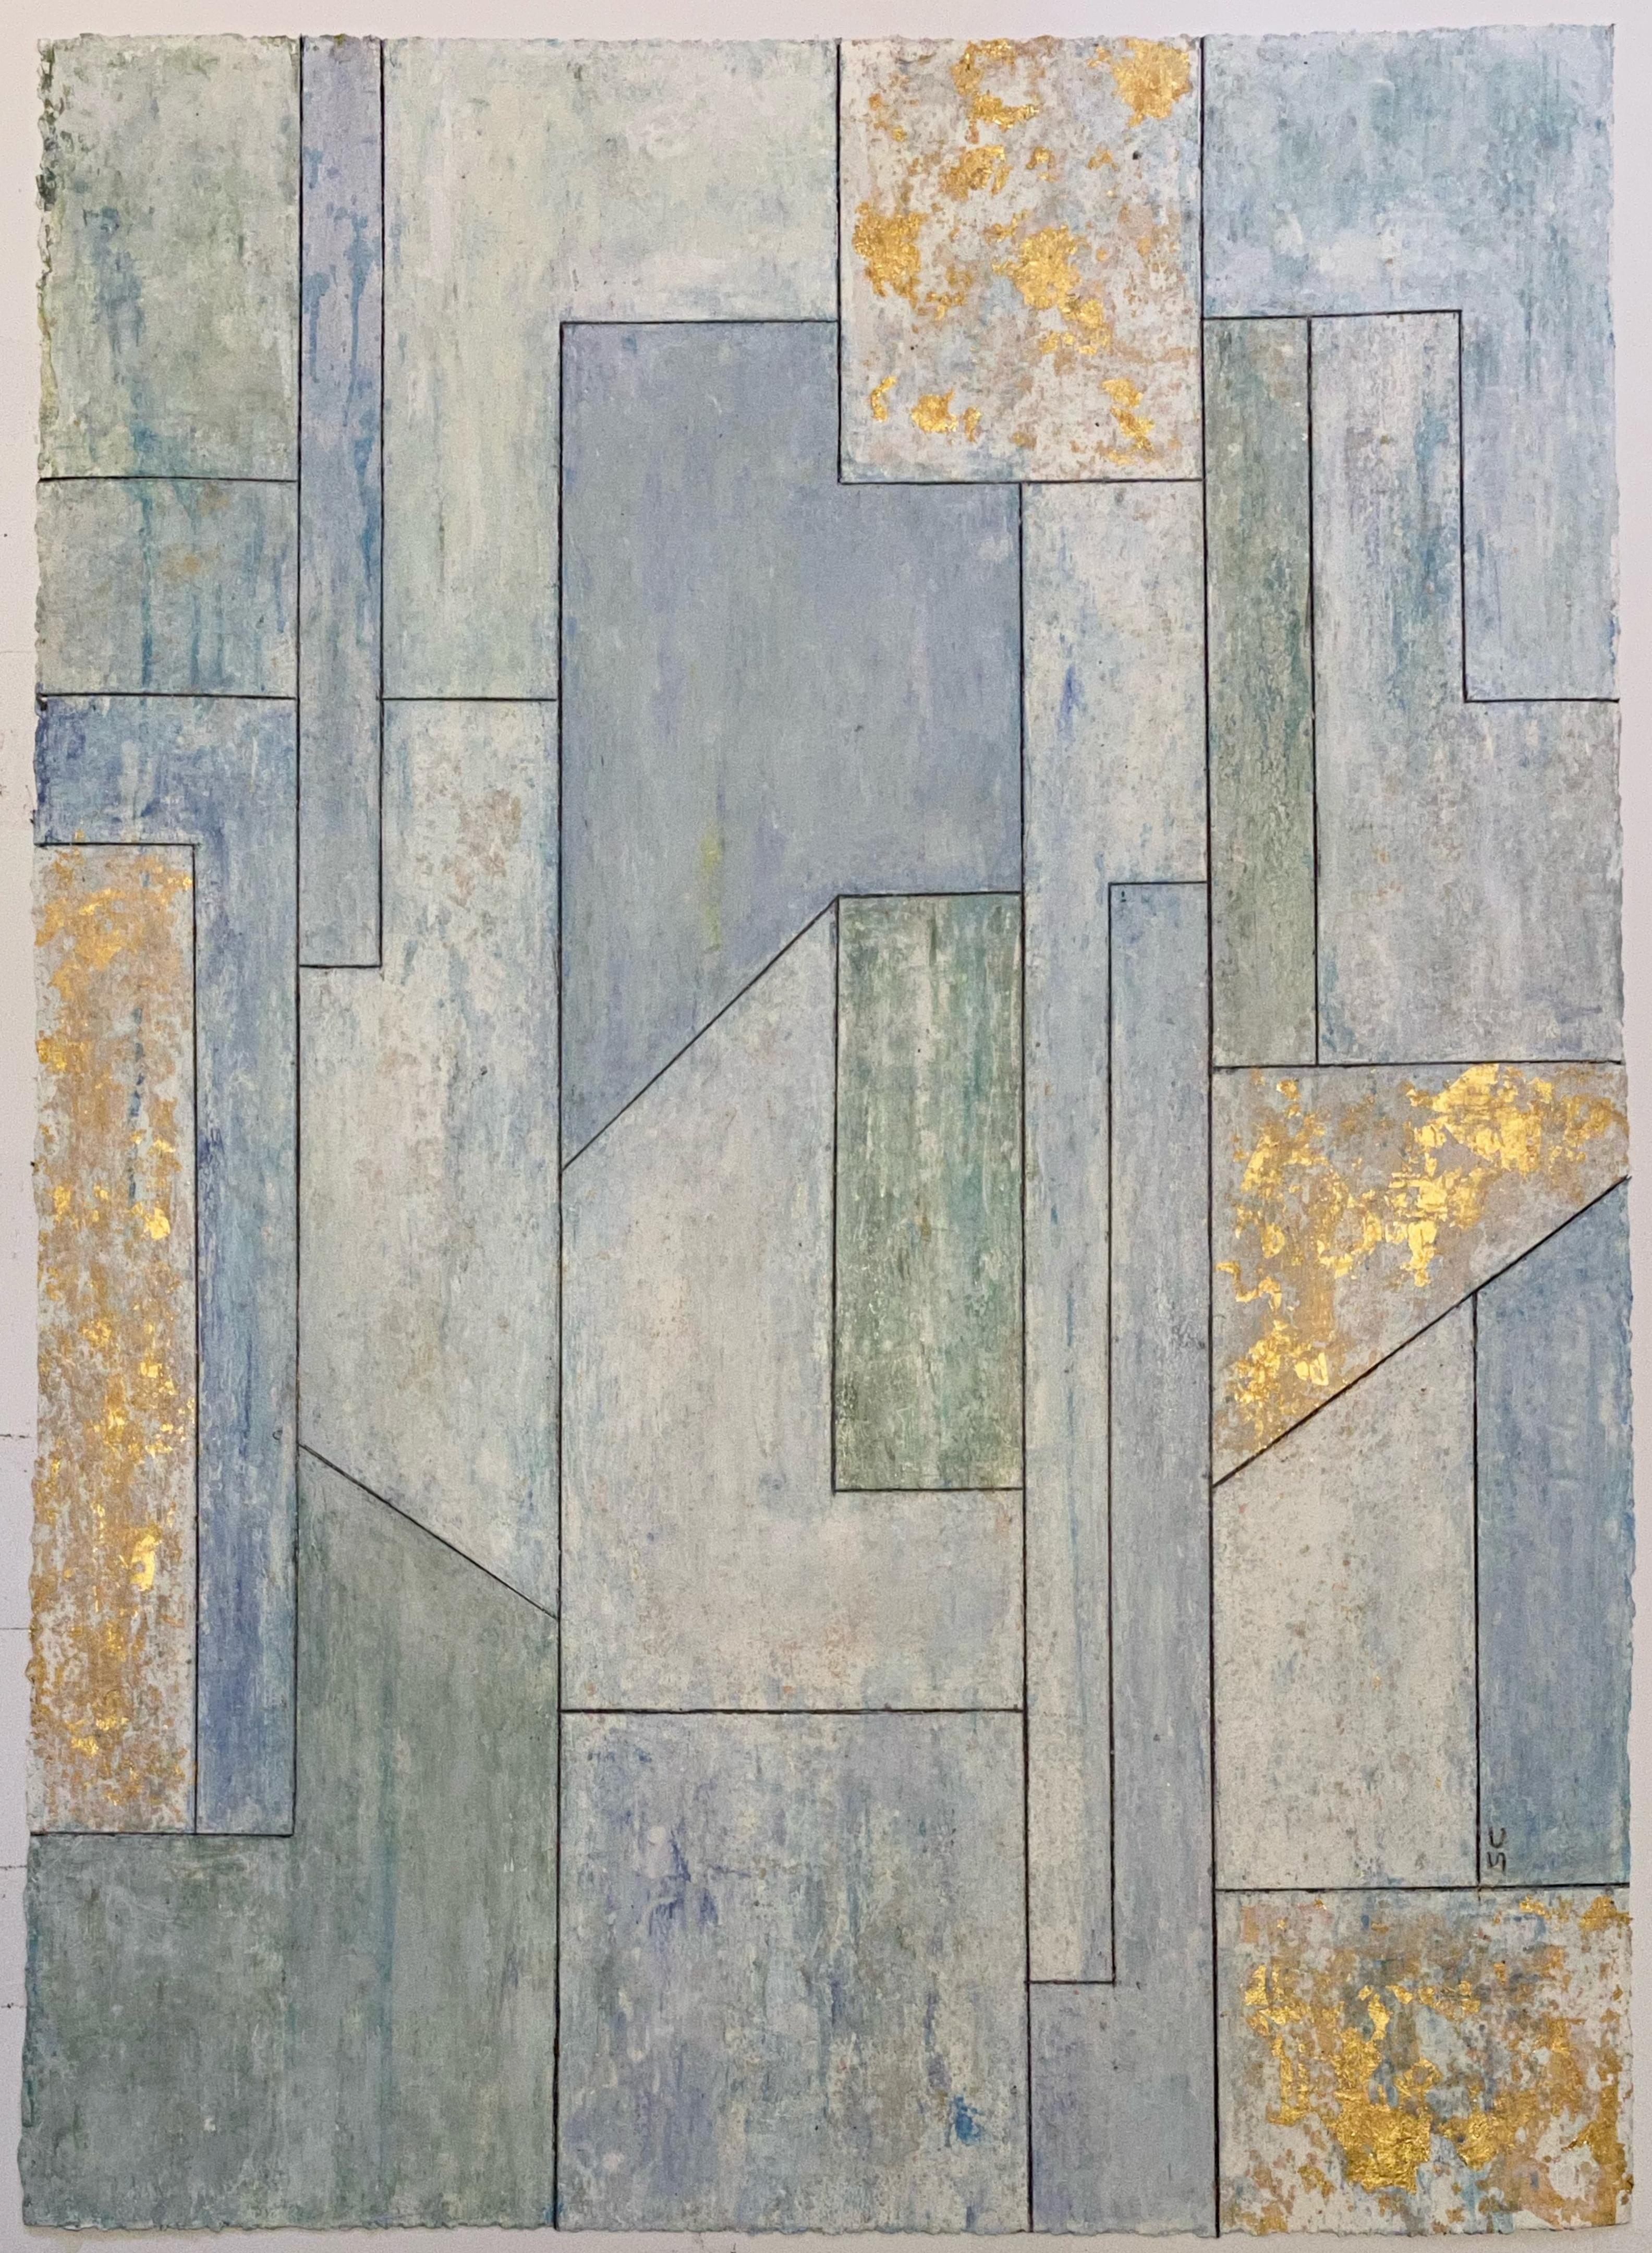 30 x 22 inches Oil, Gold leaf oil painting on paper - Enlightenment